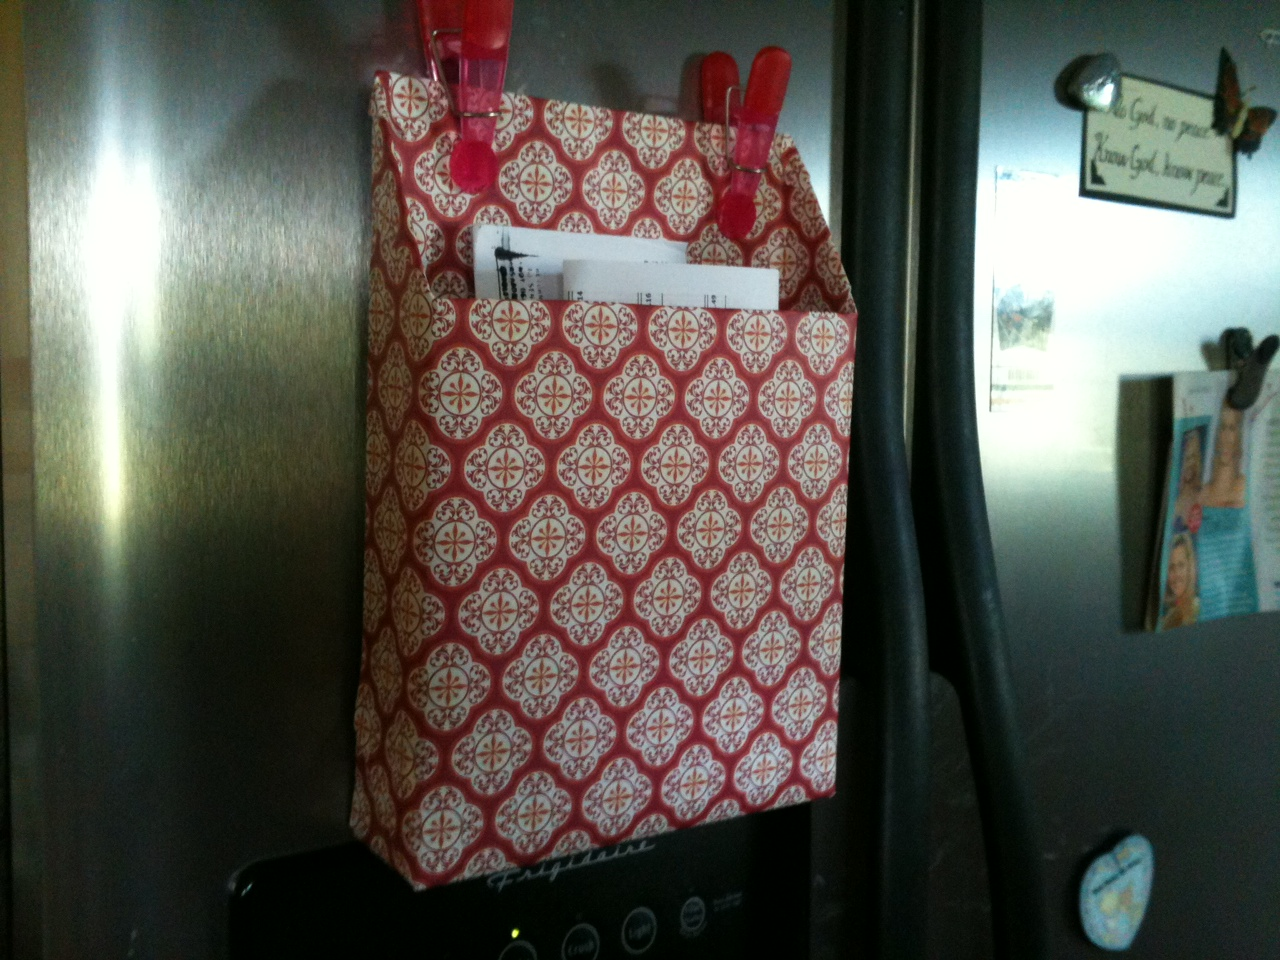 Cereal box covered in scrapbook paper with magnets on the side of the fridge. Gr